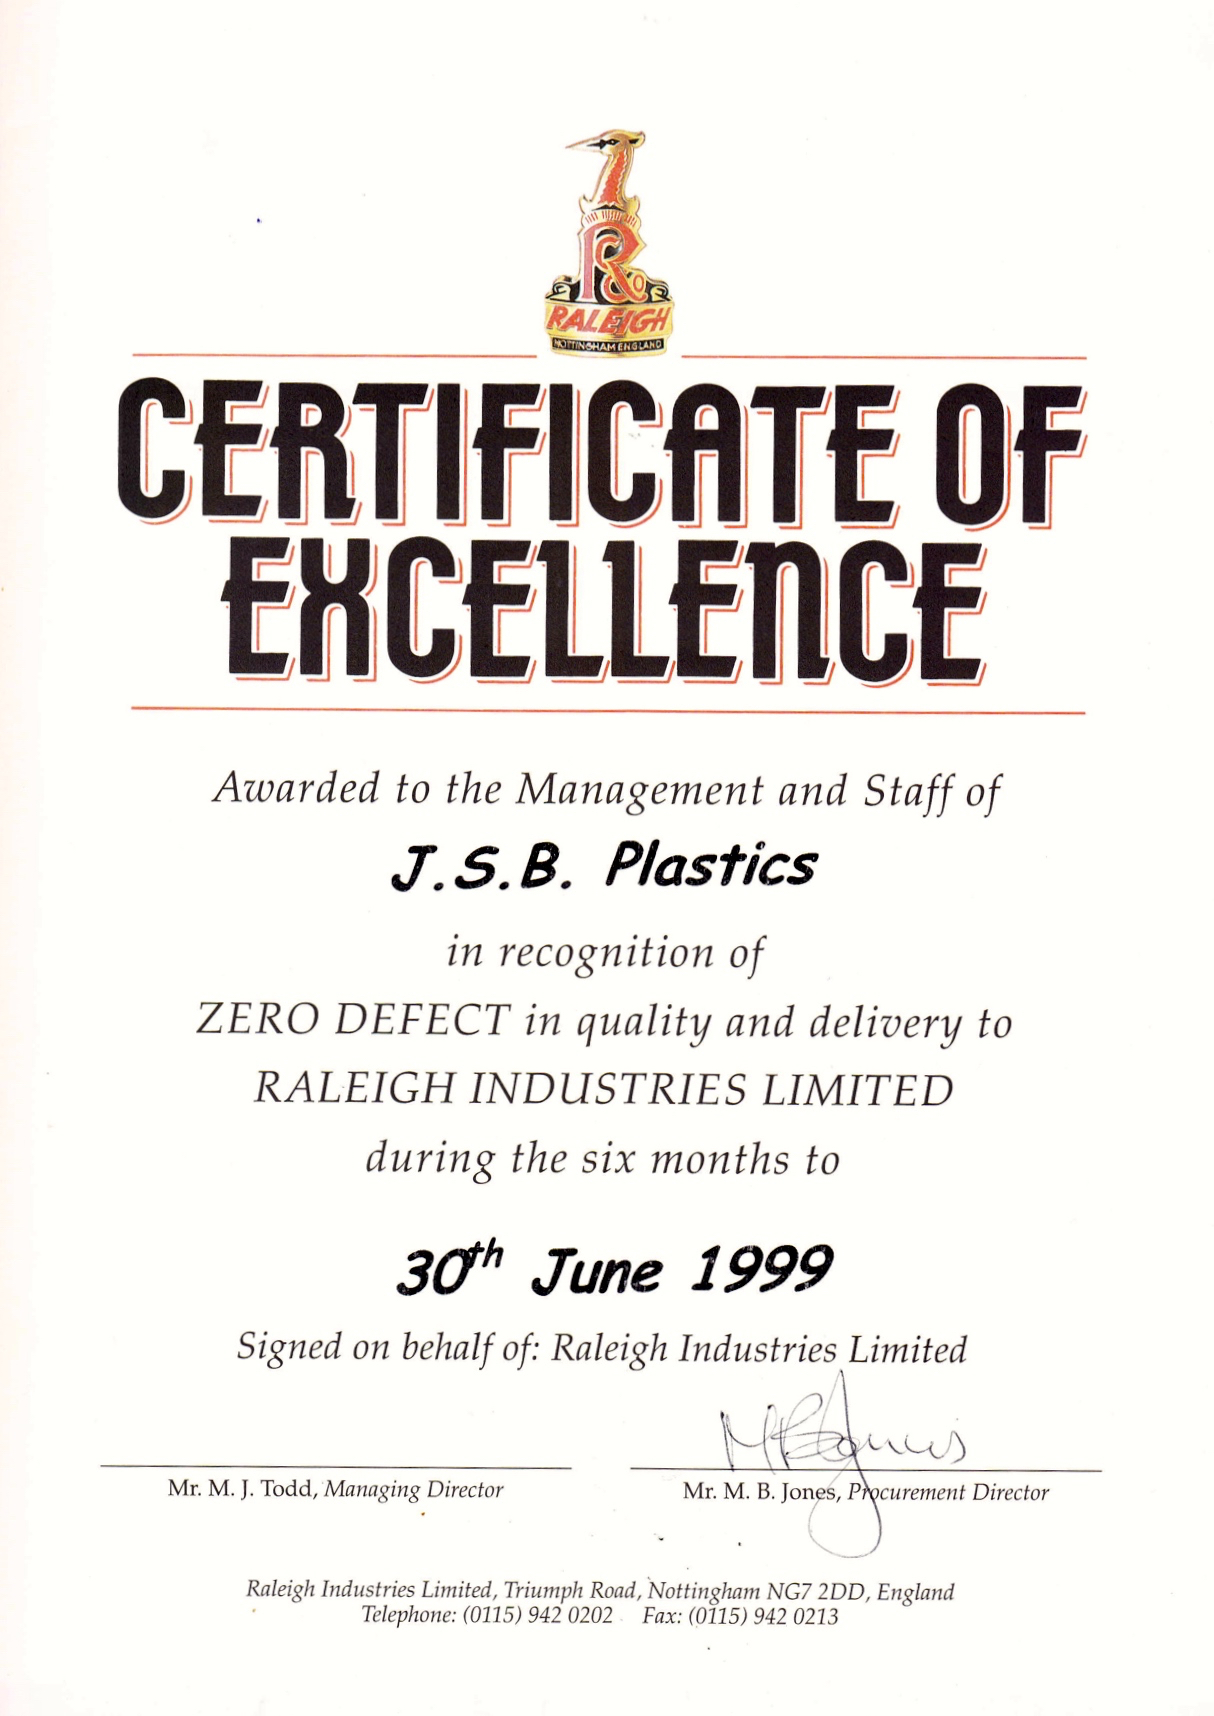 Raleigh Industries Certificate of Excellence awarded to JSB Plastics